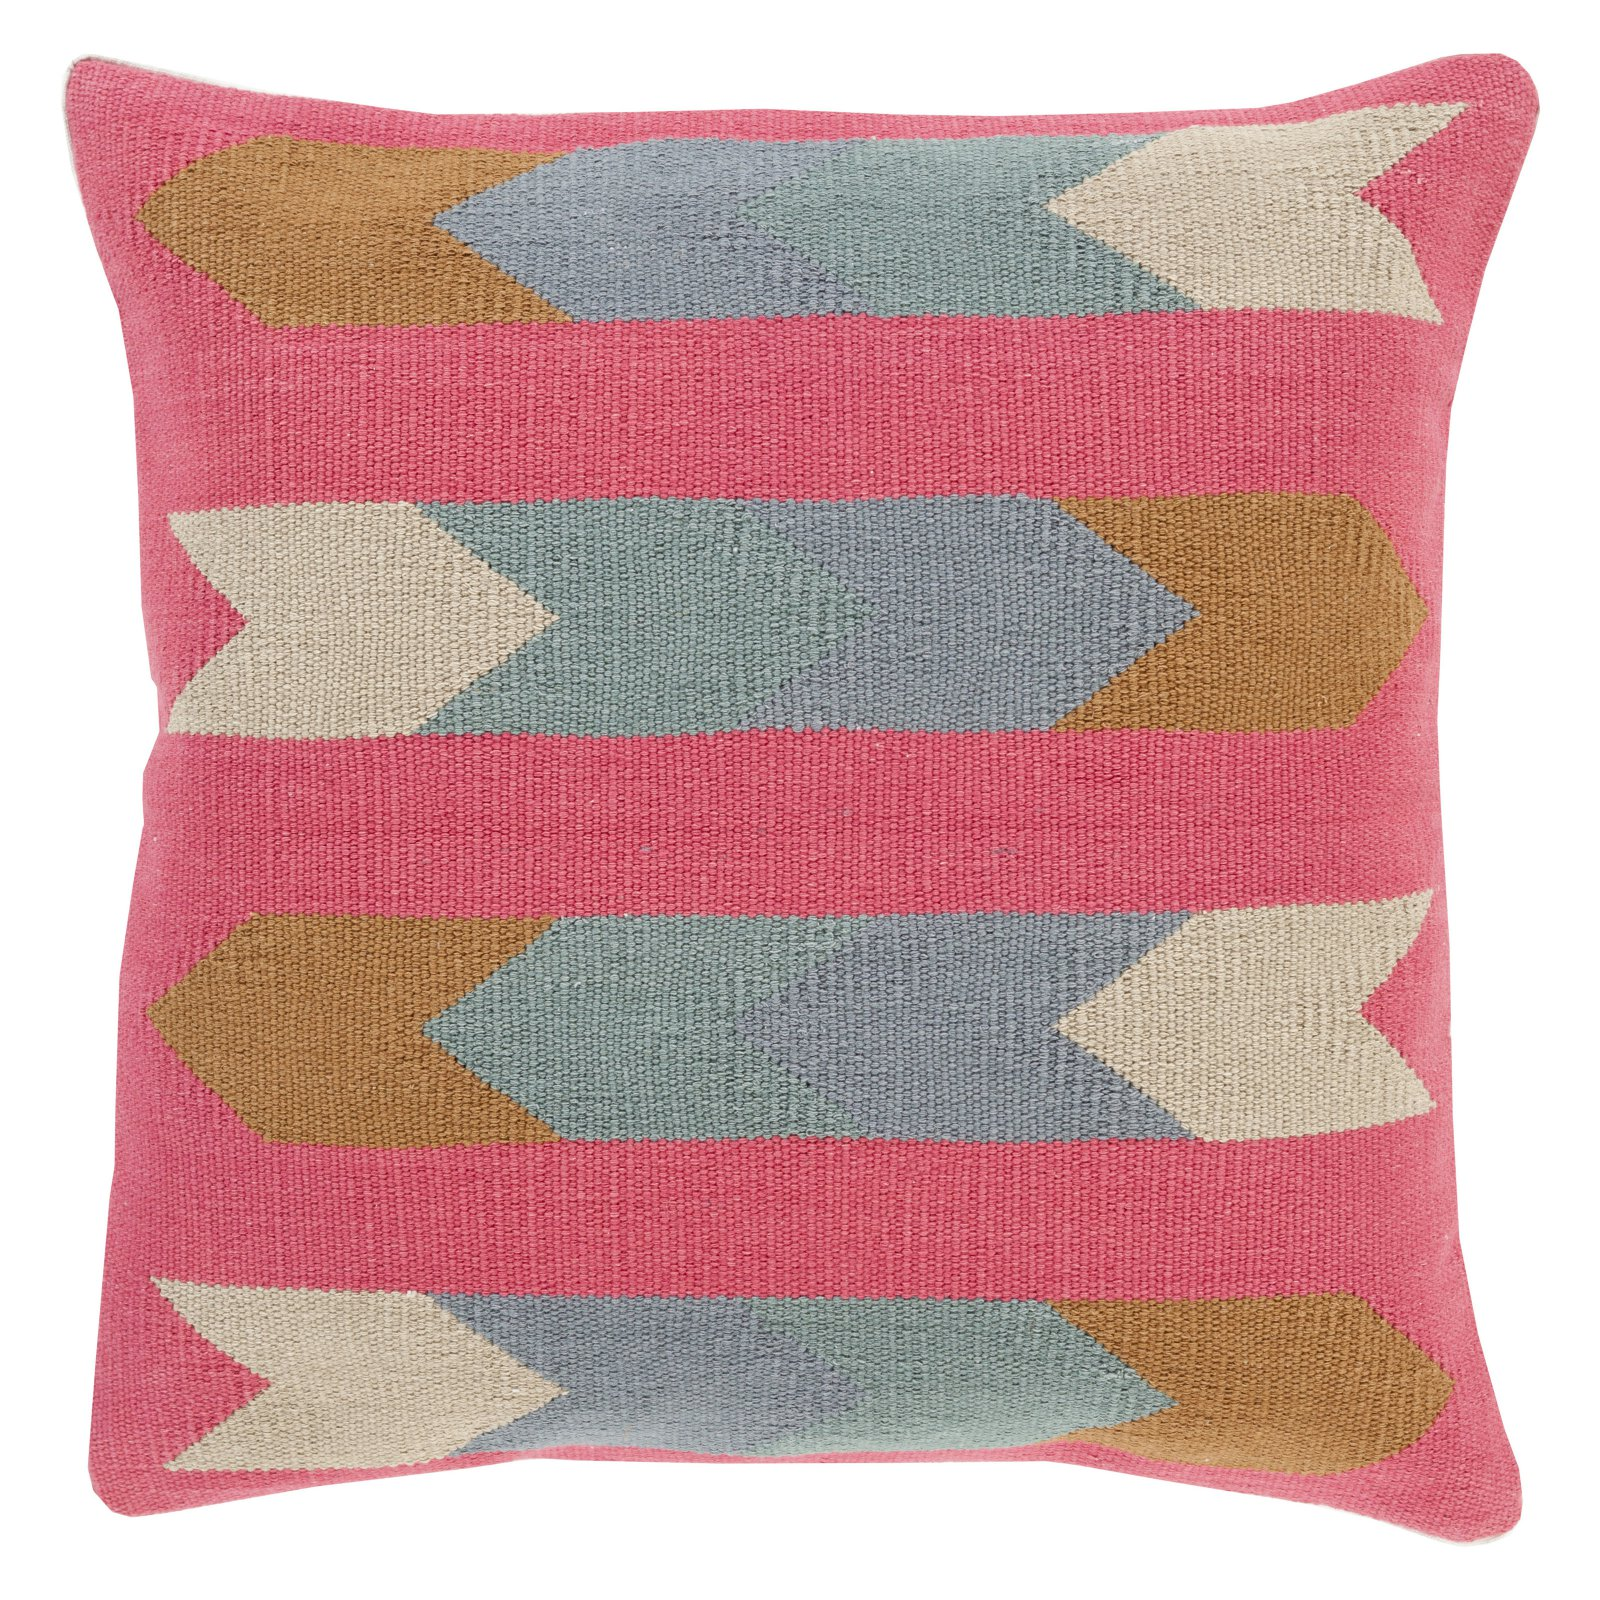 Surya Taste of Tribal Decorative Throw Pillow